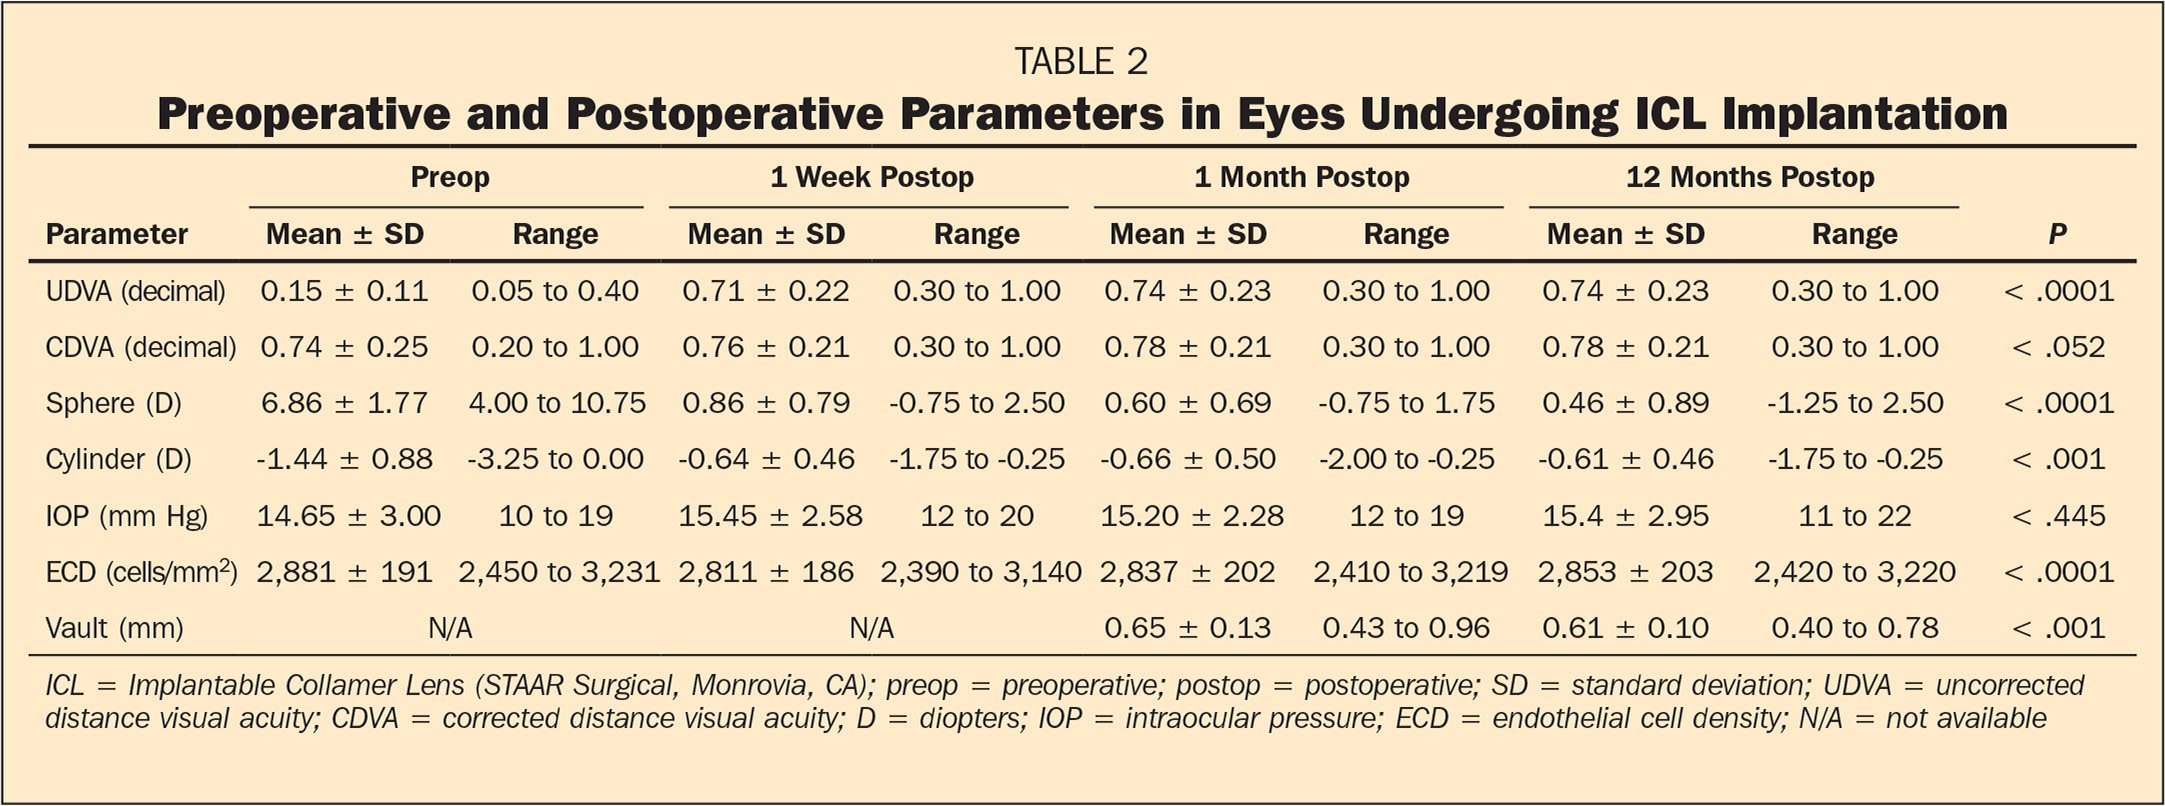 Preoperative and Postoperative Parameters in Eyes Undergoing ICL Implantation